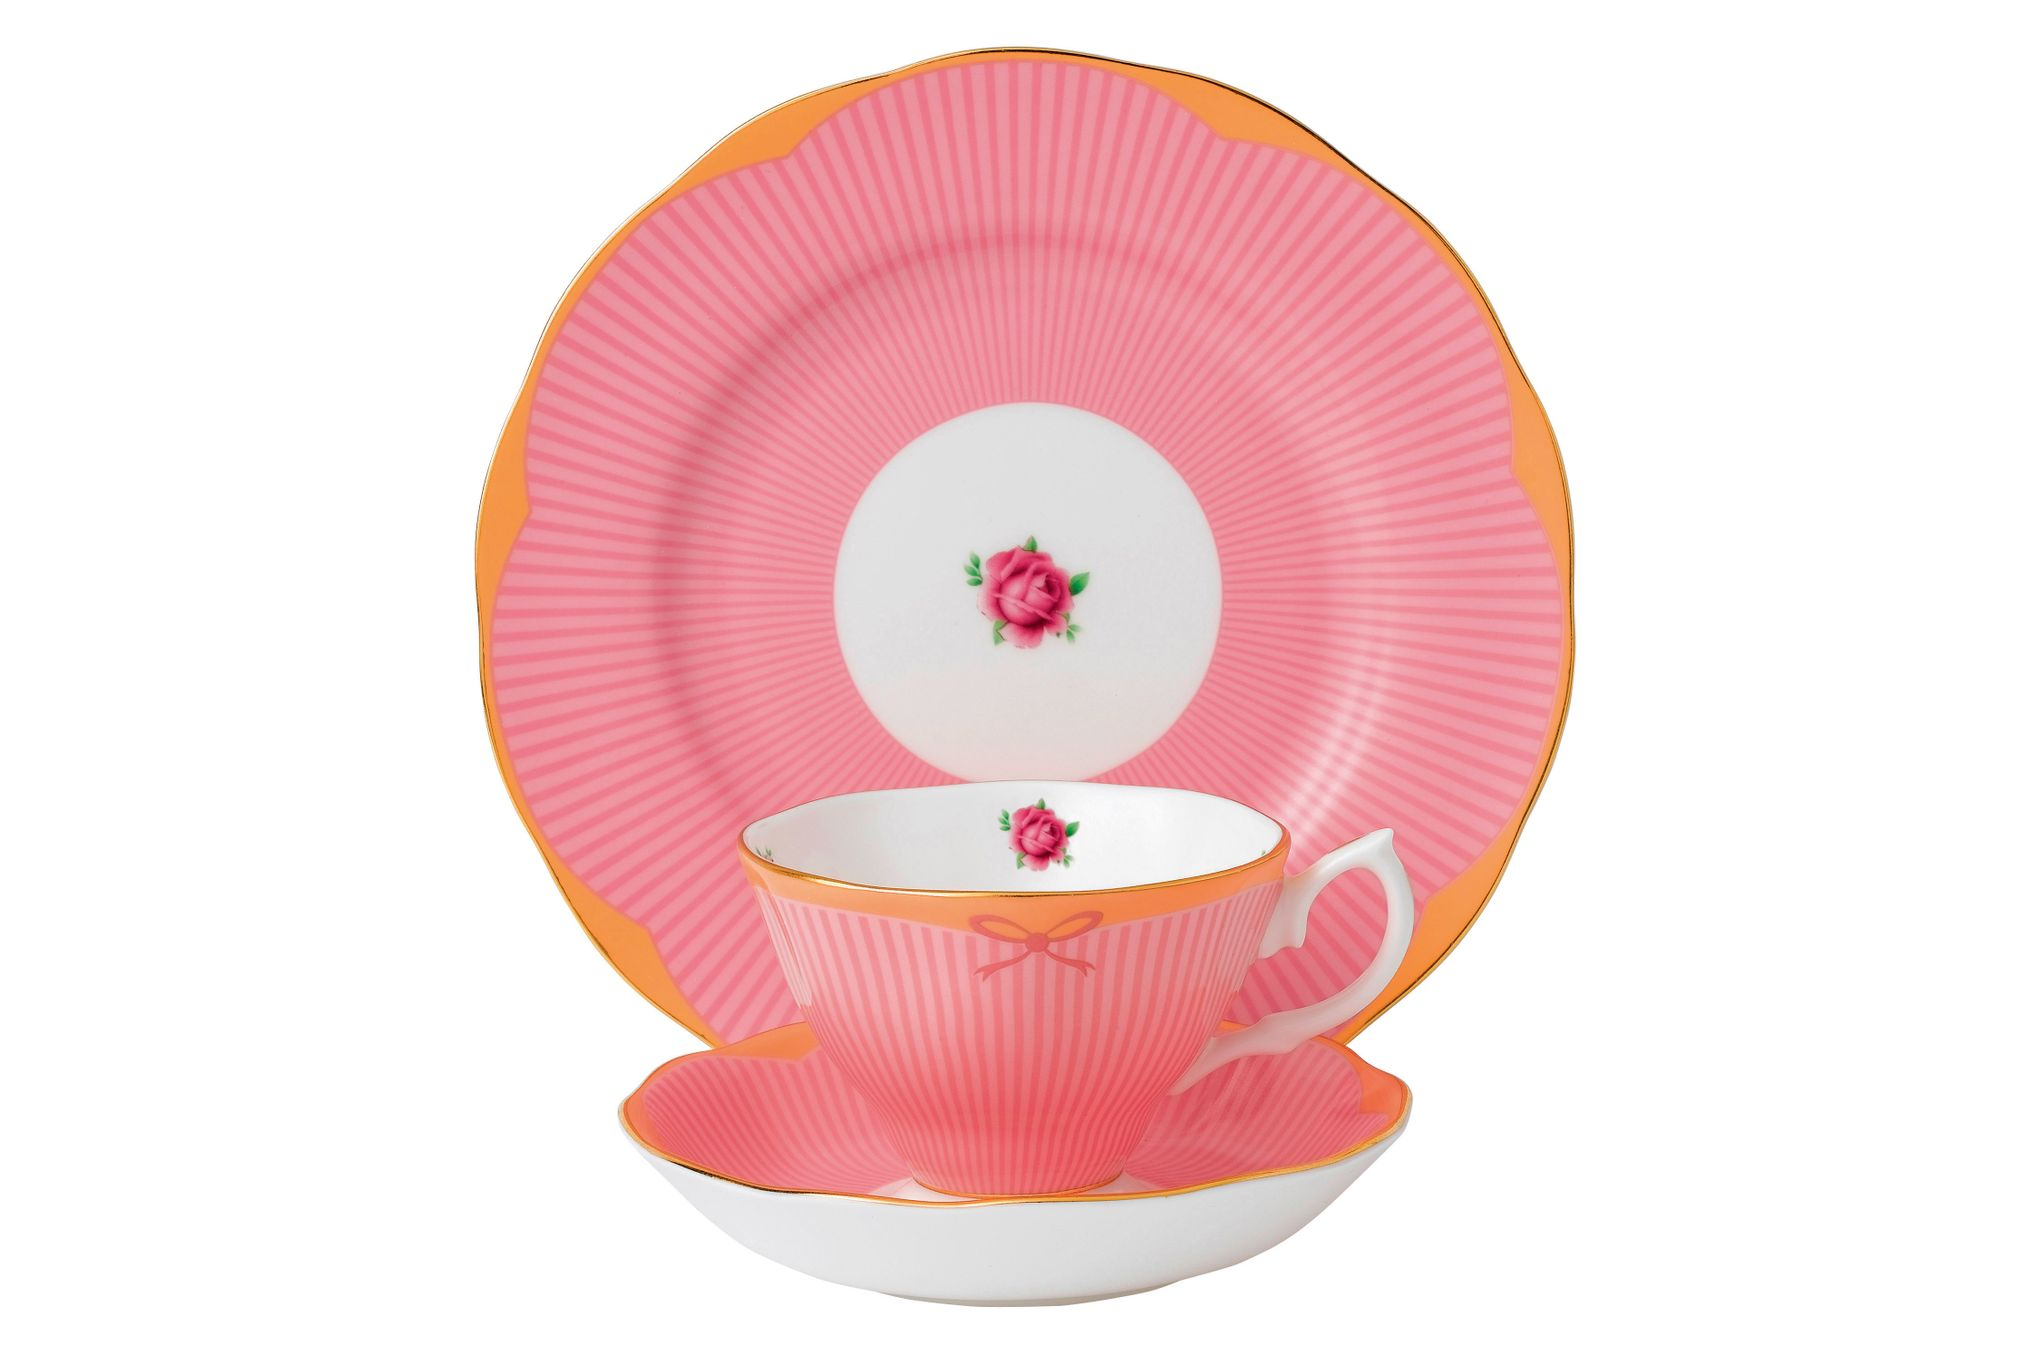 Royal Albert Candy Collection 3 Piece Set Sweet Stripe, Teacup, Saucer & Plate 20cm thumb 1